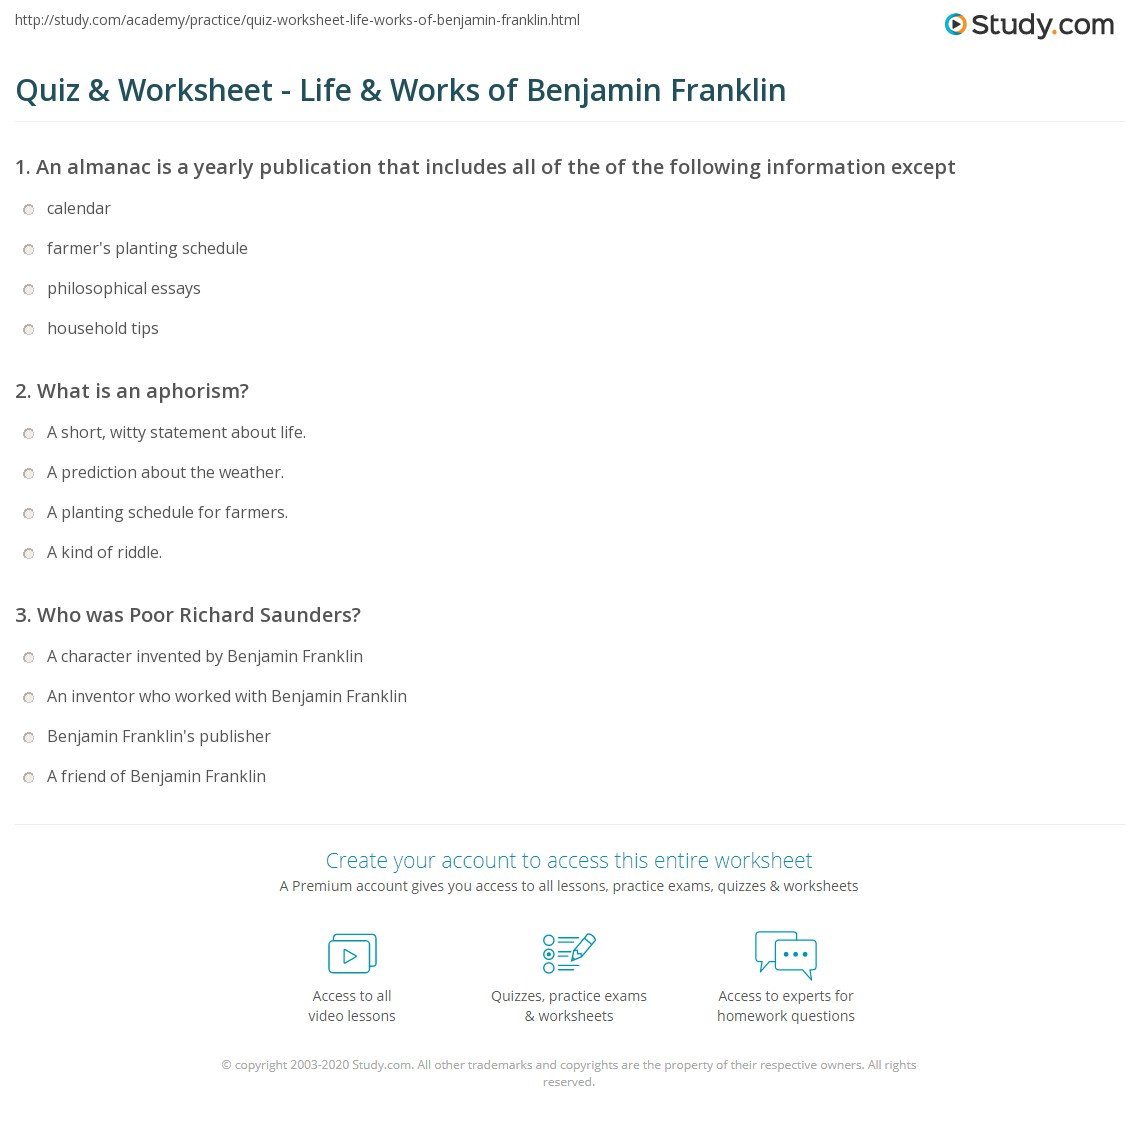 quiz worksheet life works of benjamin franklin. Black Bedroom Furniture Sets. Home Design Ideas